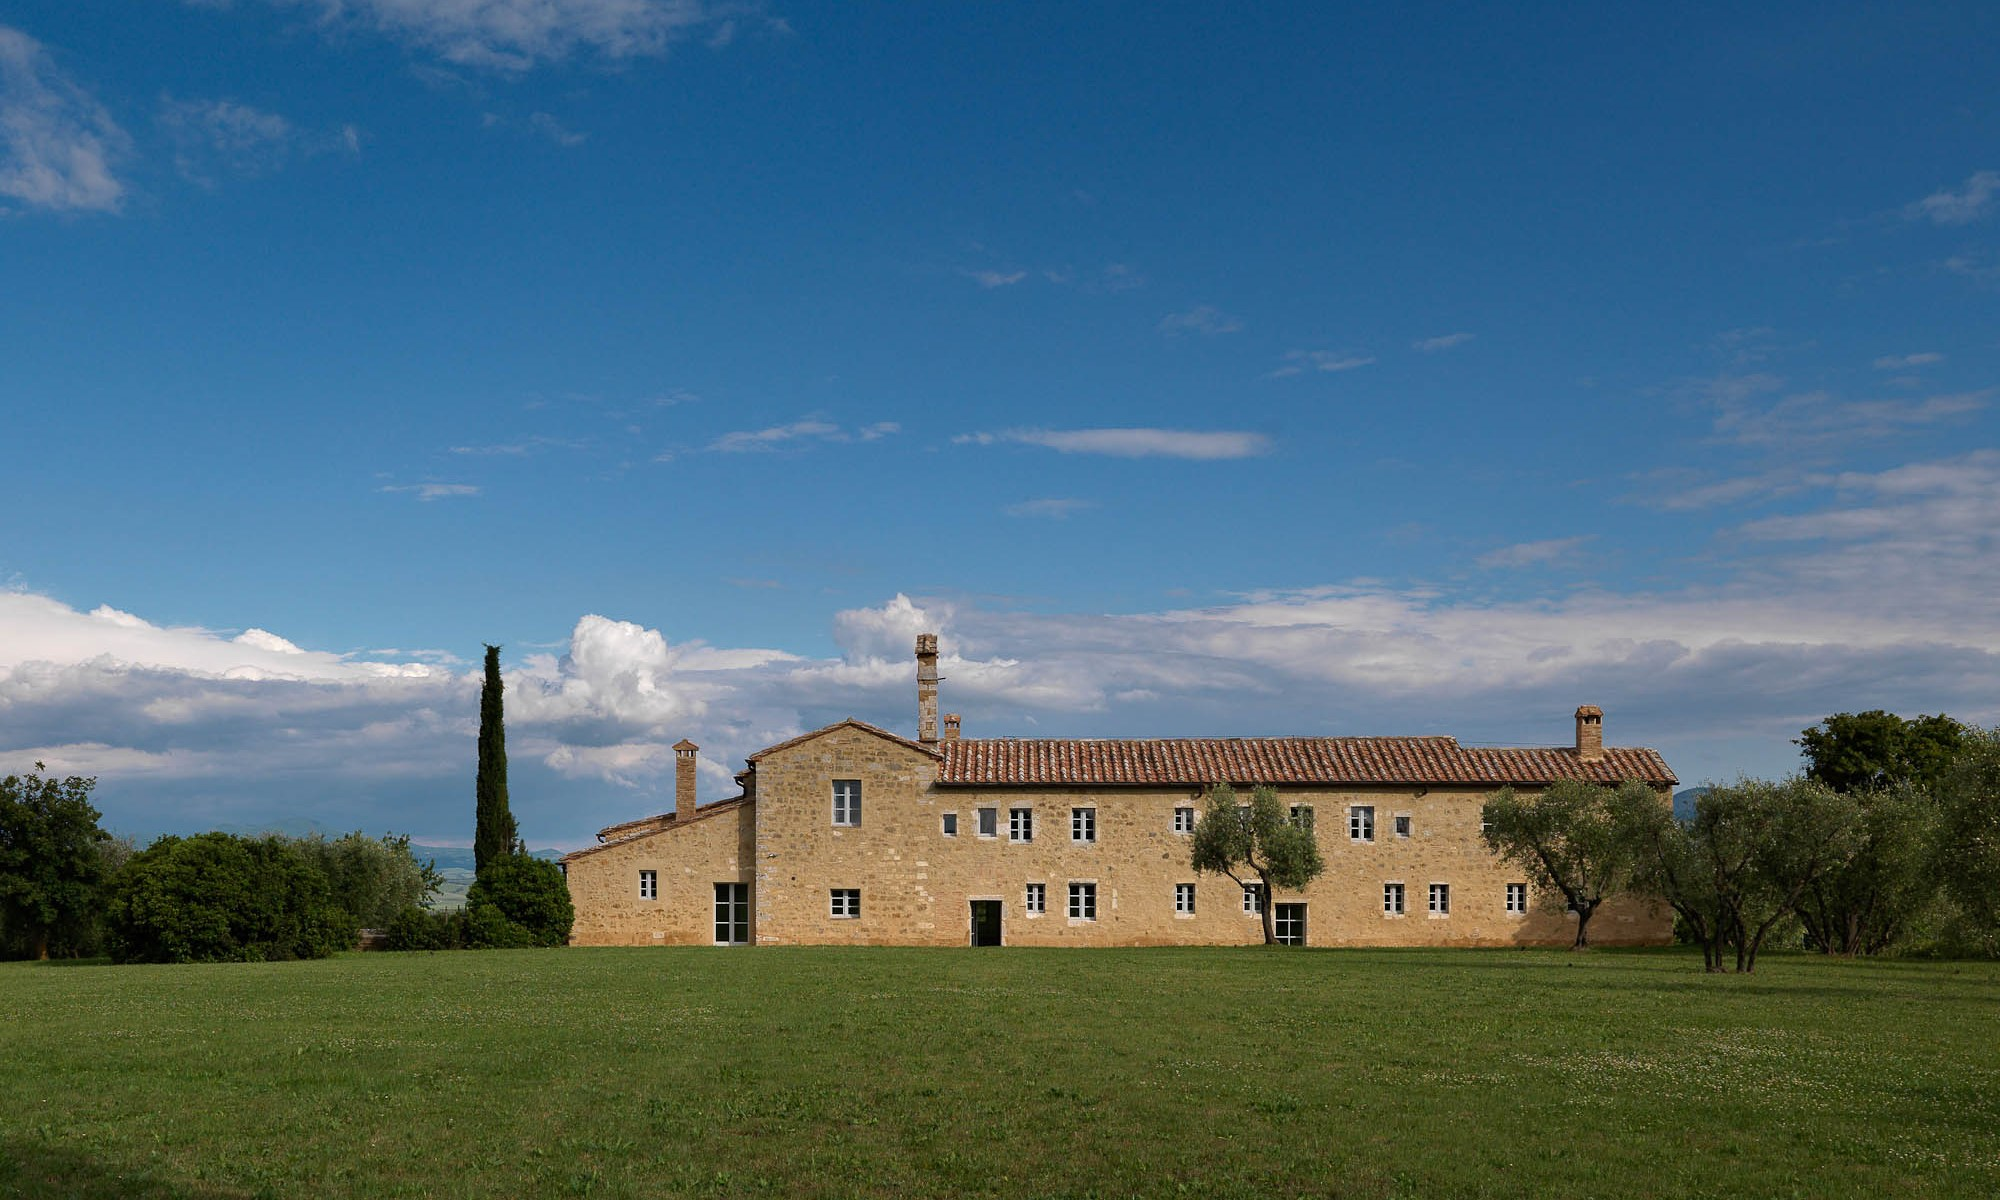 convento in Val D'Orcia - photo by E. Cano